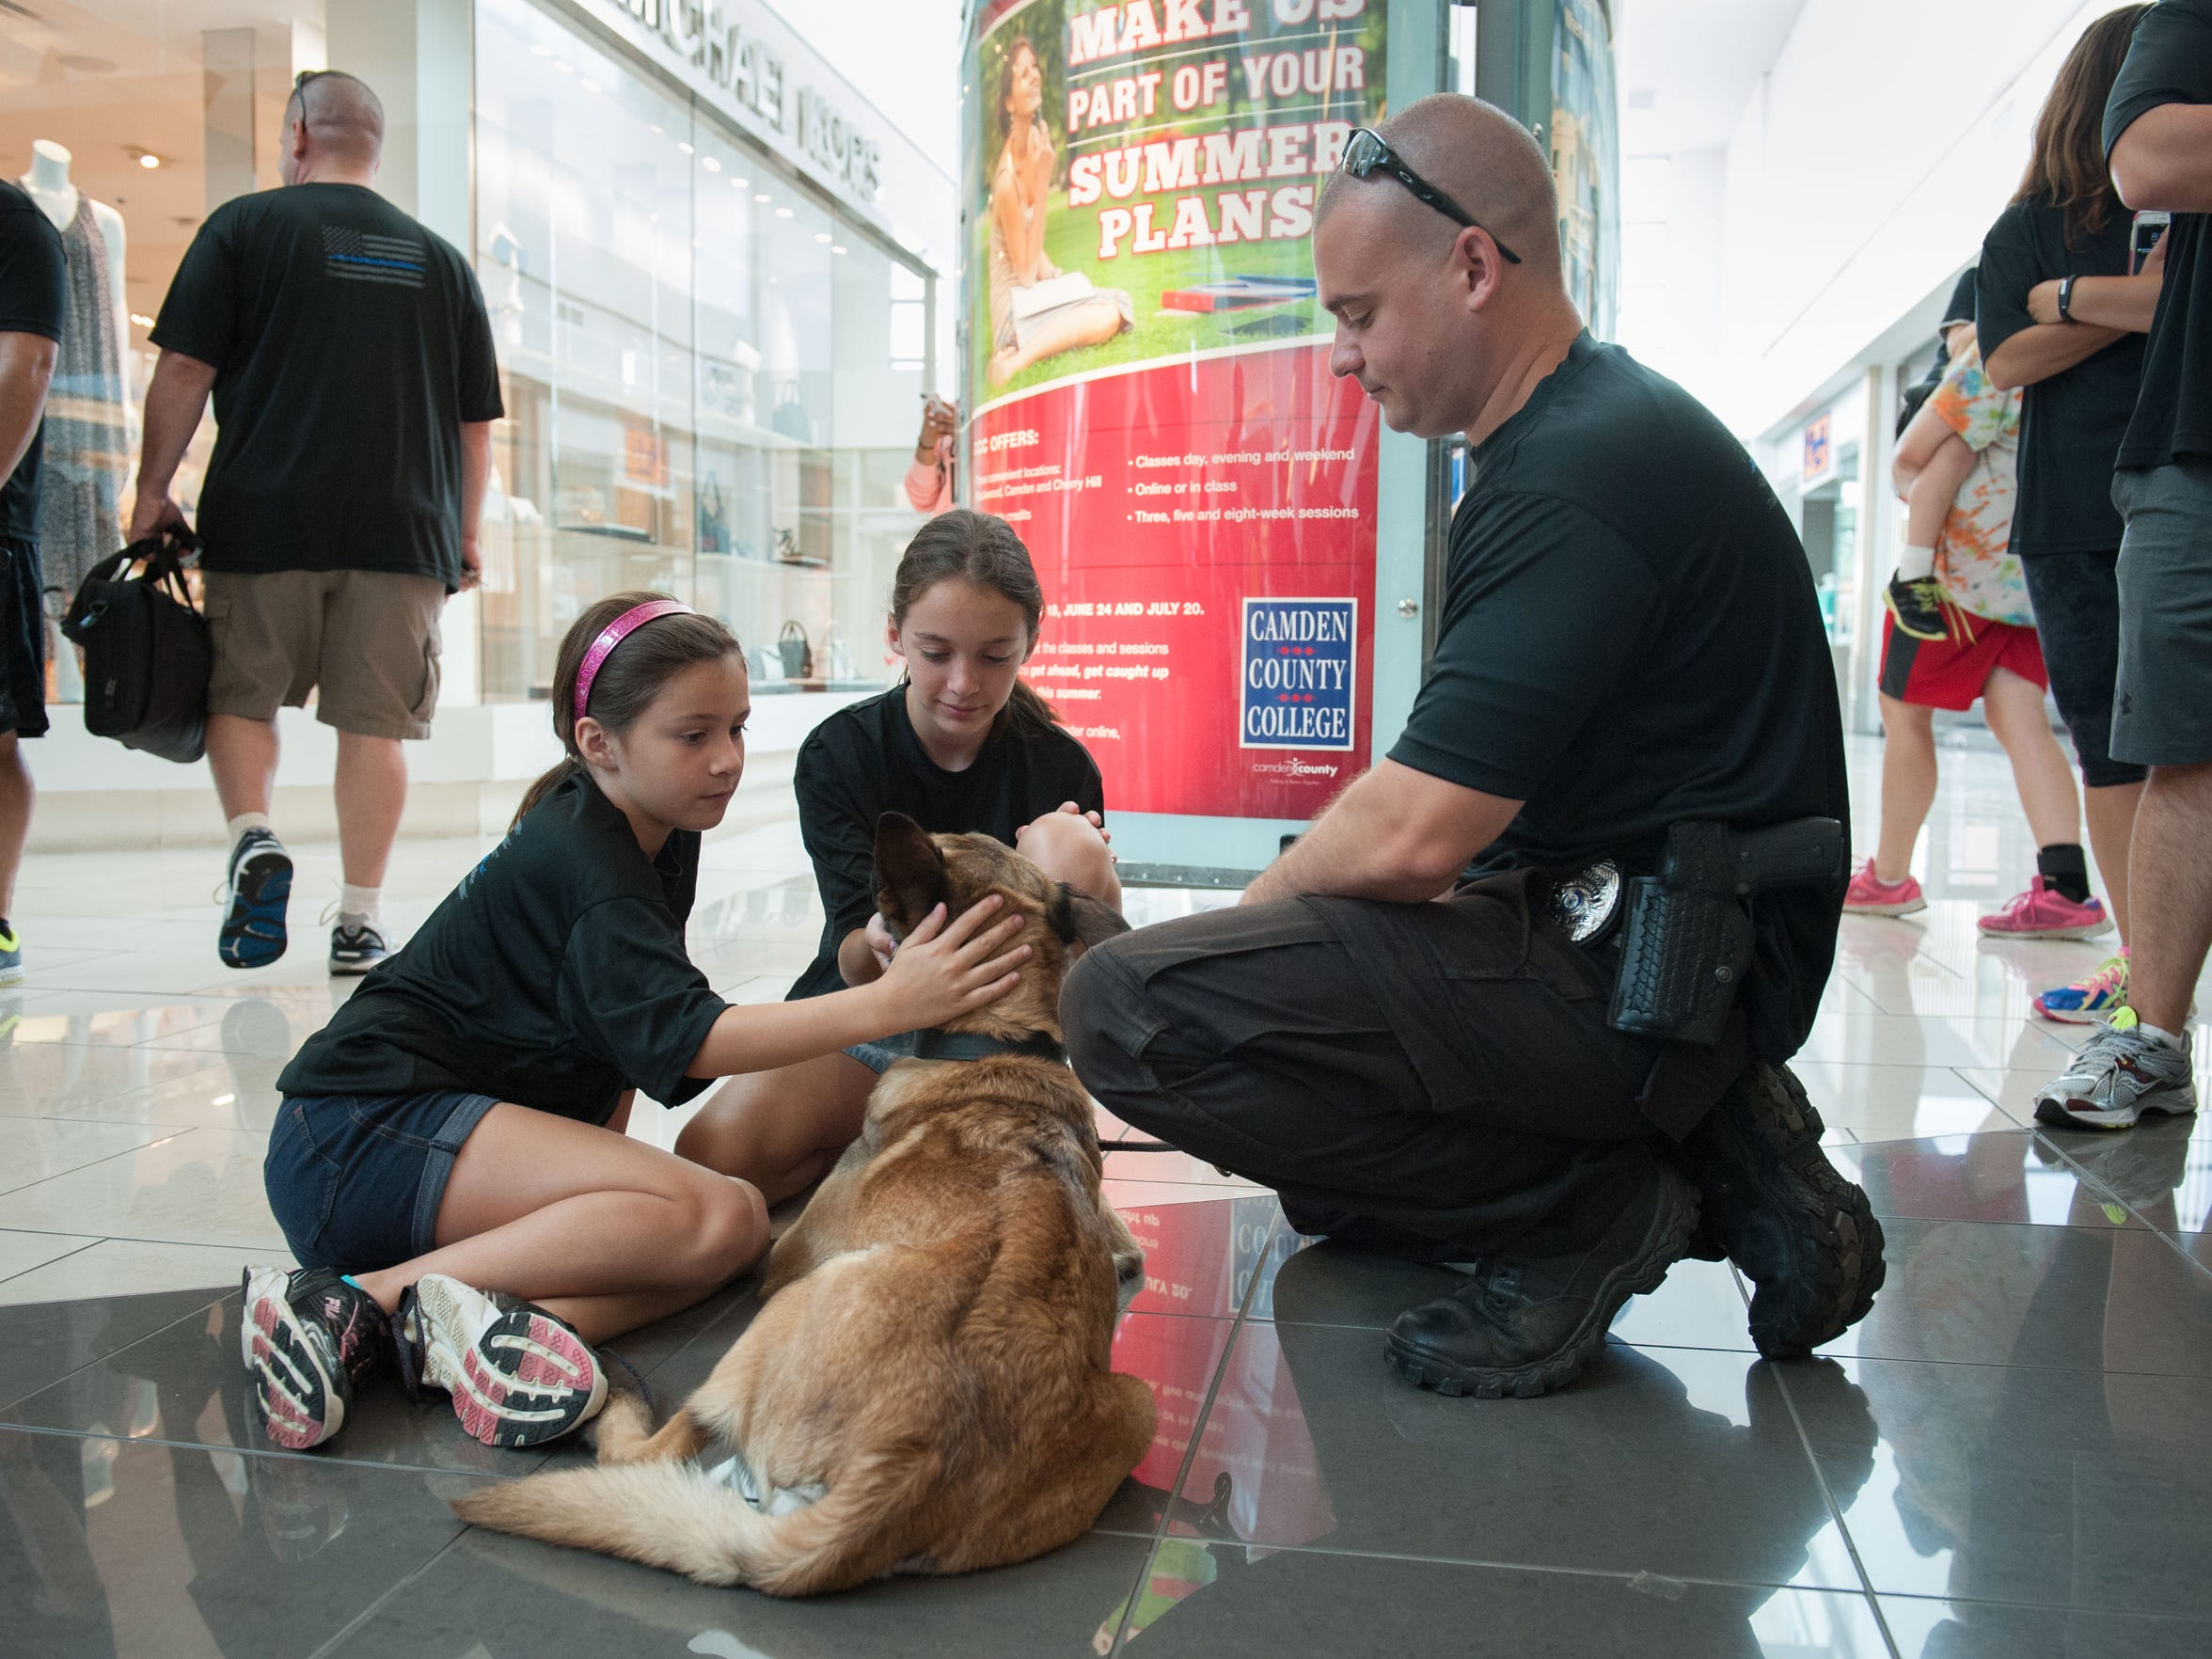 Officer Gary D'Alessio with the Cherry Hill Police Department pet K-9 dog Pandora in 2015 at a community event at the Cherry Hill Mall.